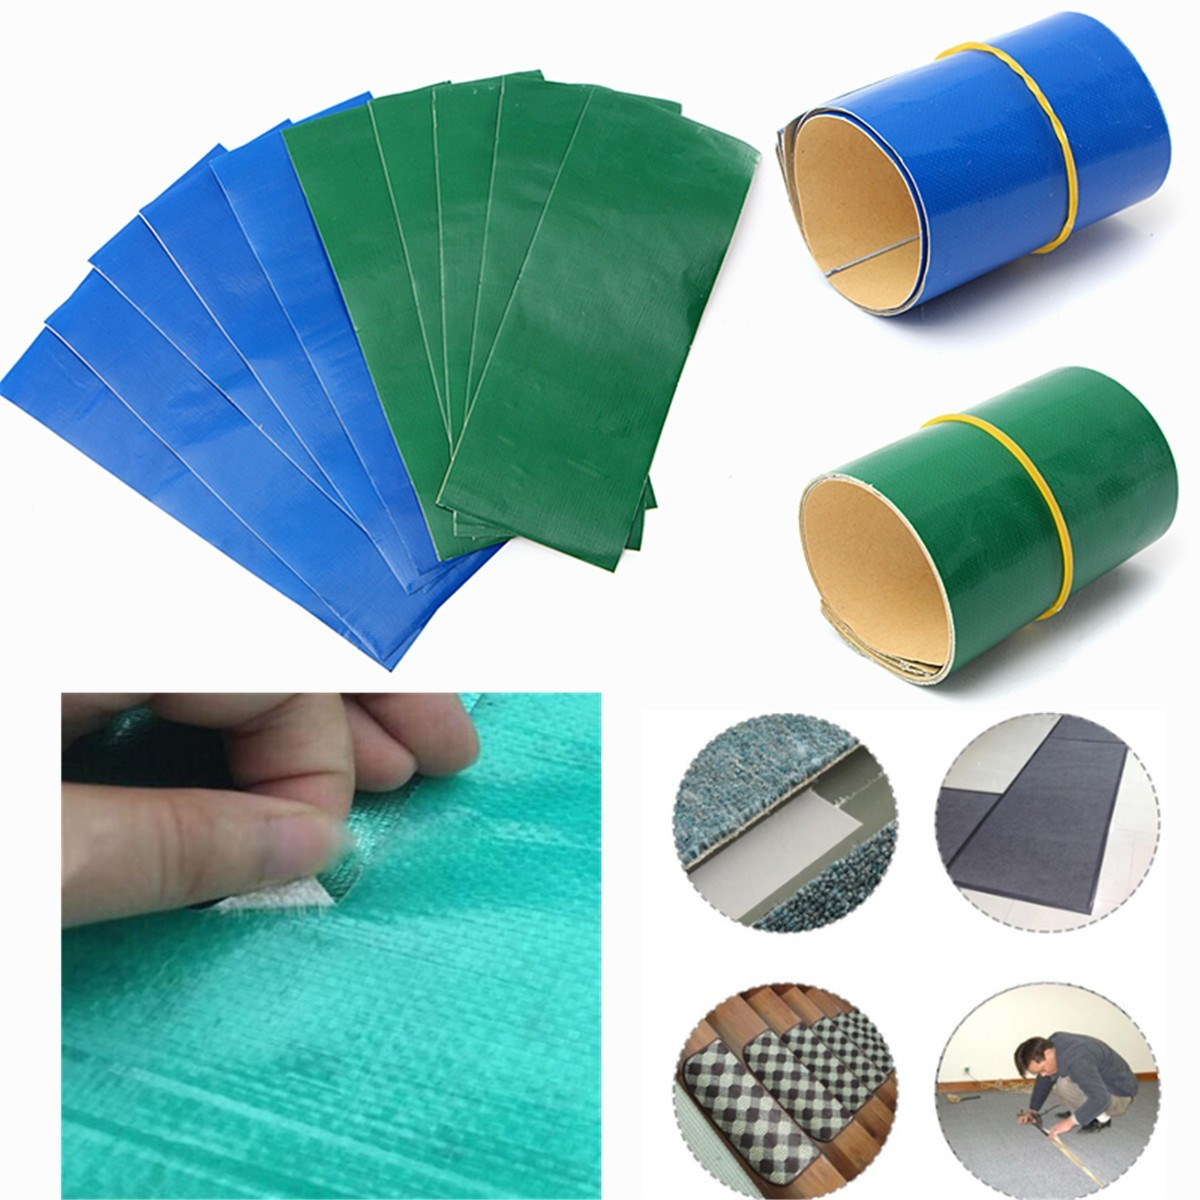 5pcs/lot Self adhesive waterproof Nylon stickers cloth patches Mend Down Outdoor Tent Repair tape patch tent repair accessories-in Tent Accessories from ...  sc 1 st  AliExpress.com & 5pcs/lot Self adhesive waterproof Nylon stickers cloth patches ...